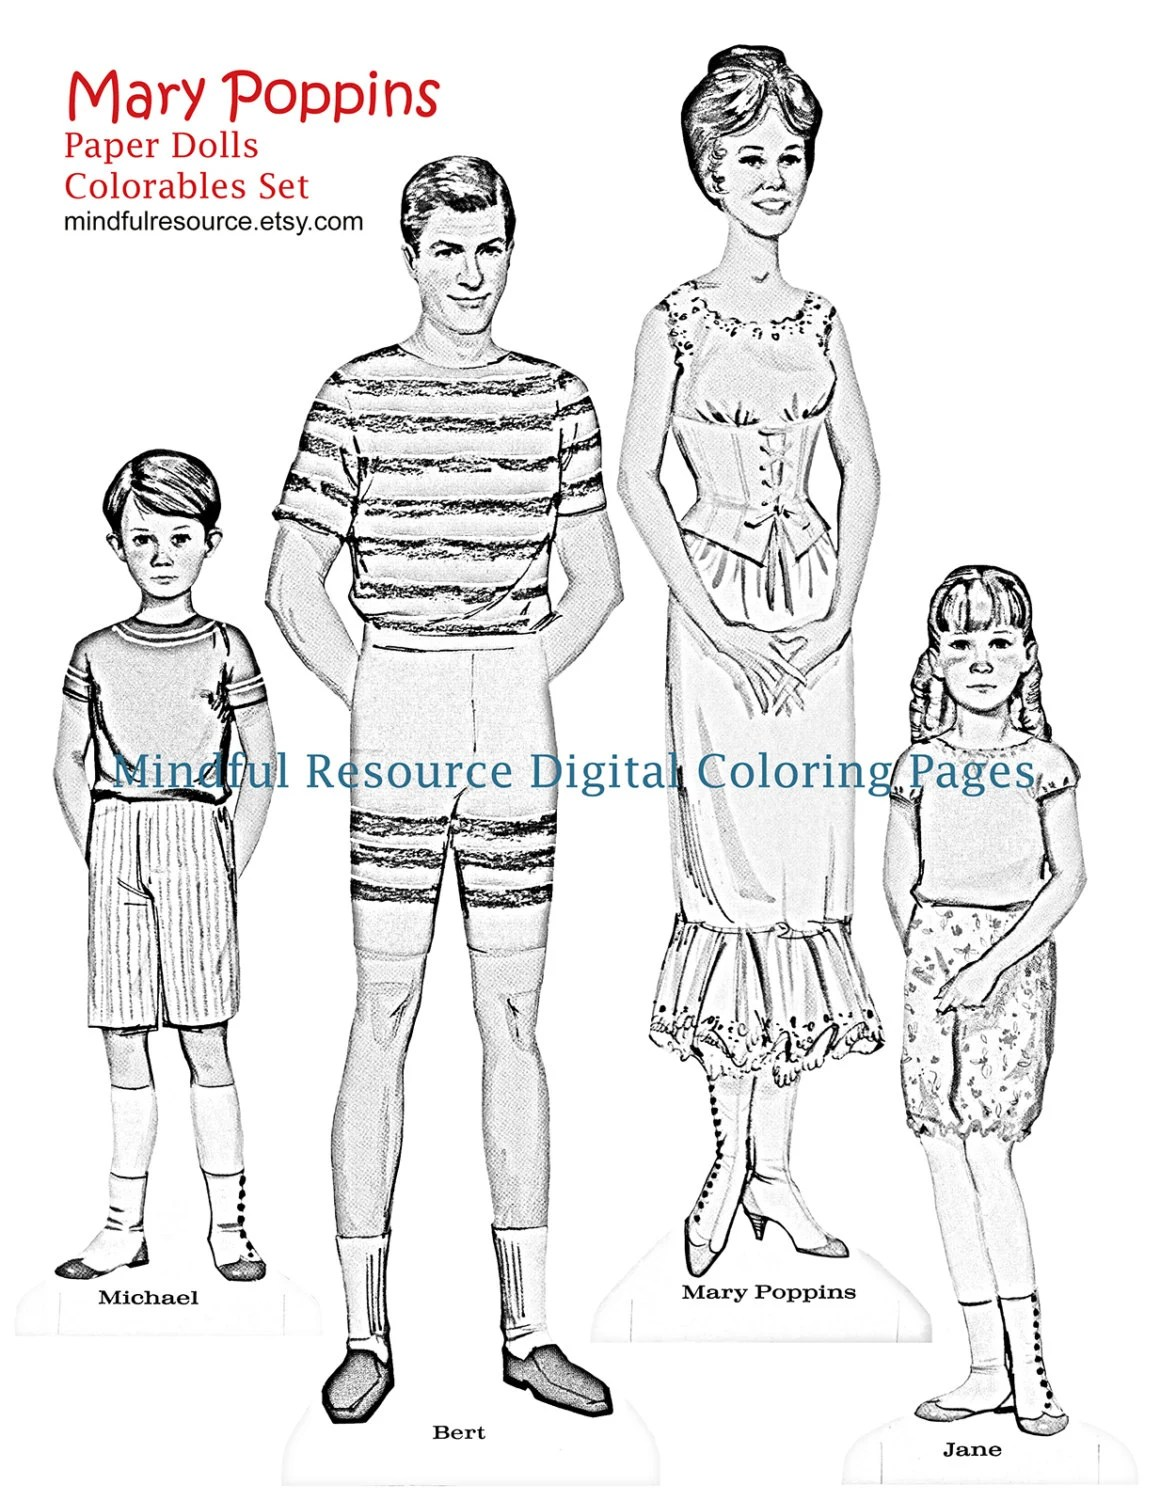 Mary Poppins Coloring Paper Doll Pages Colouring Sheets